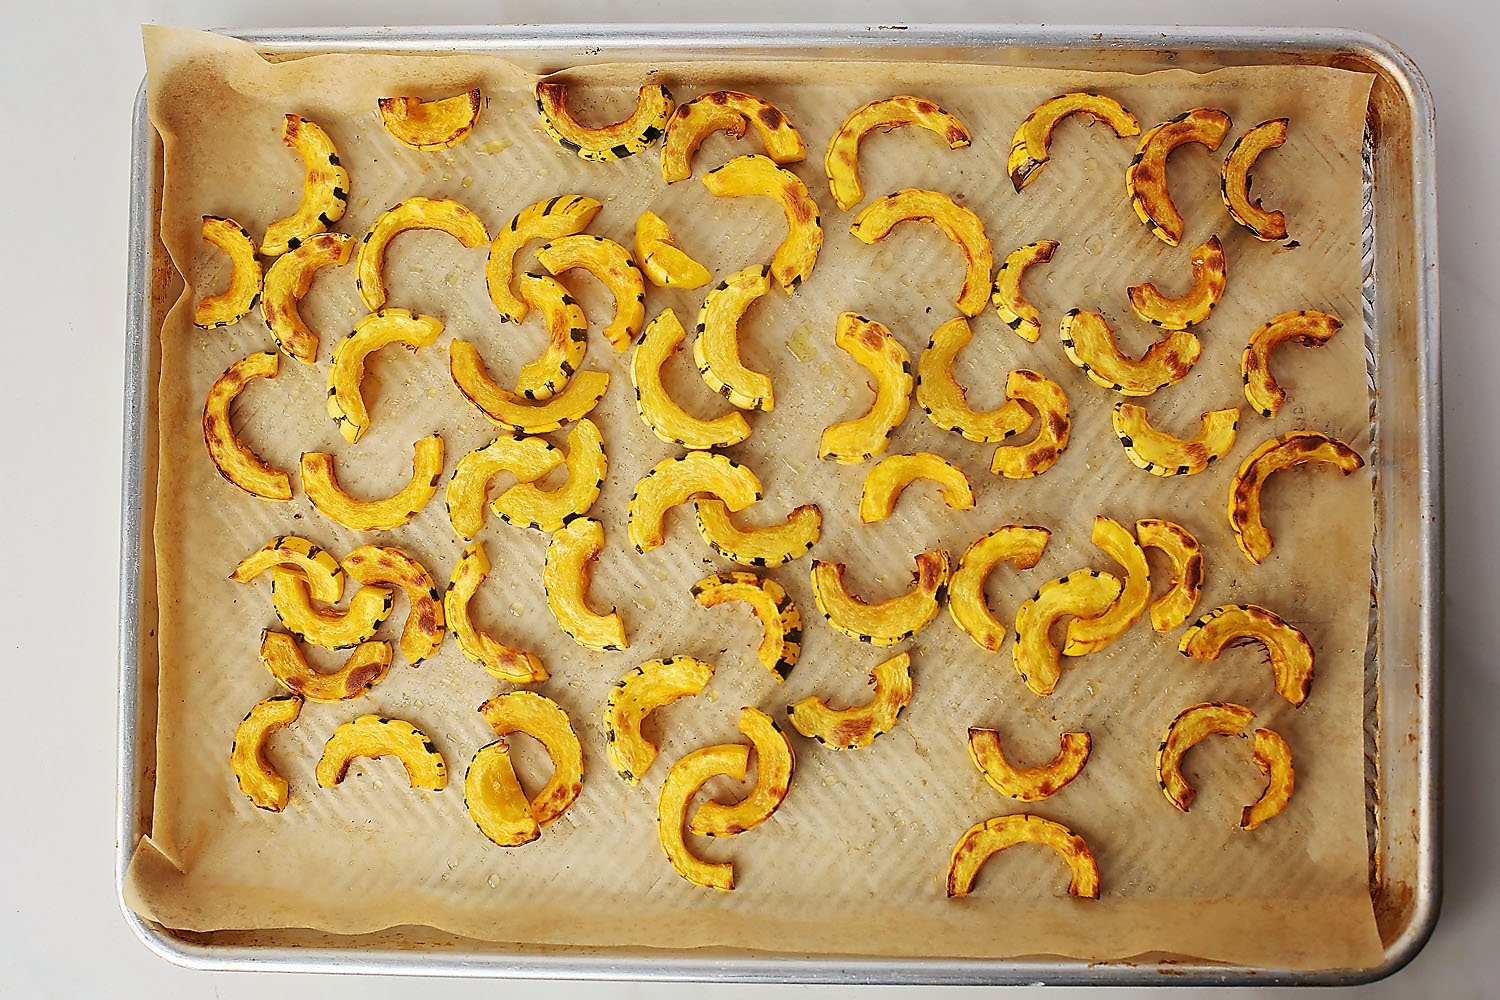 Baked delicata squash slices on the sheet pan